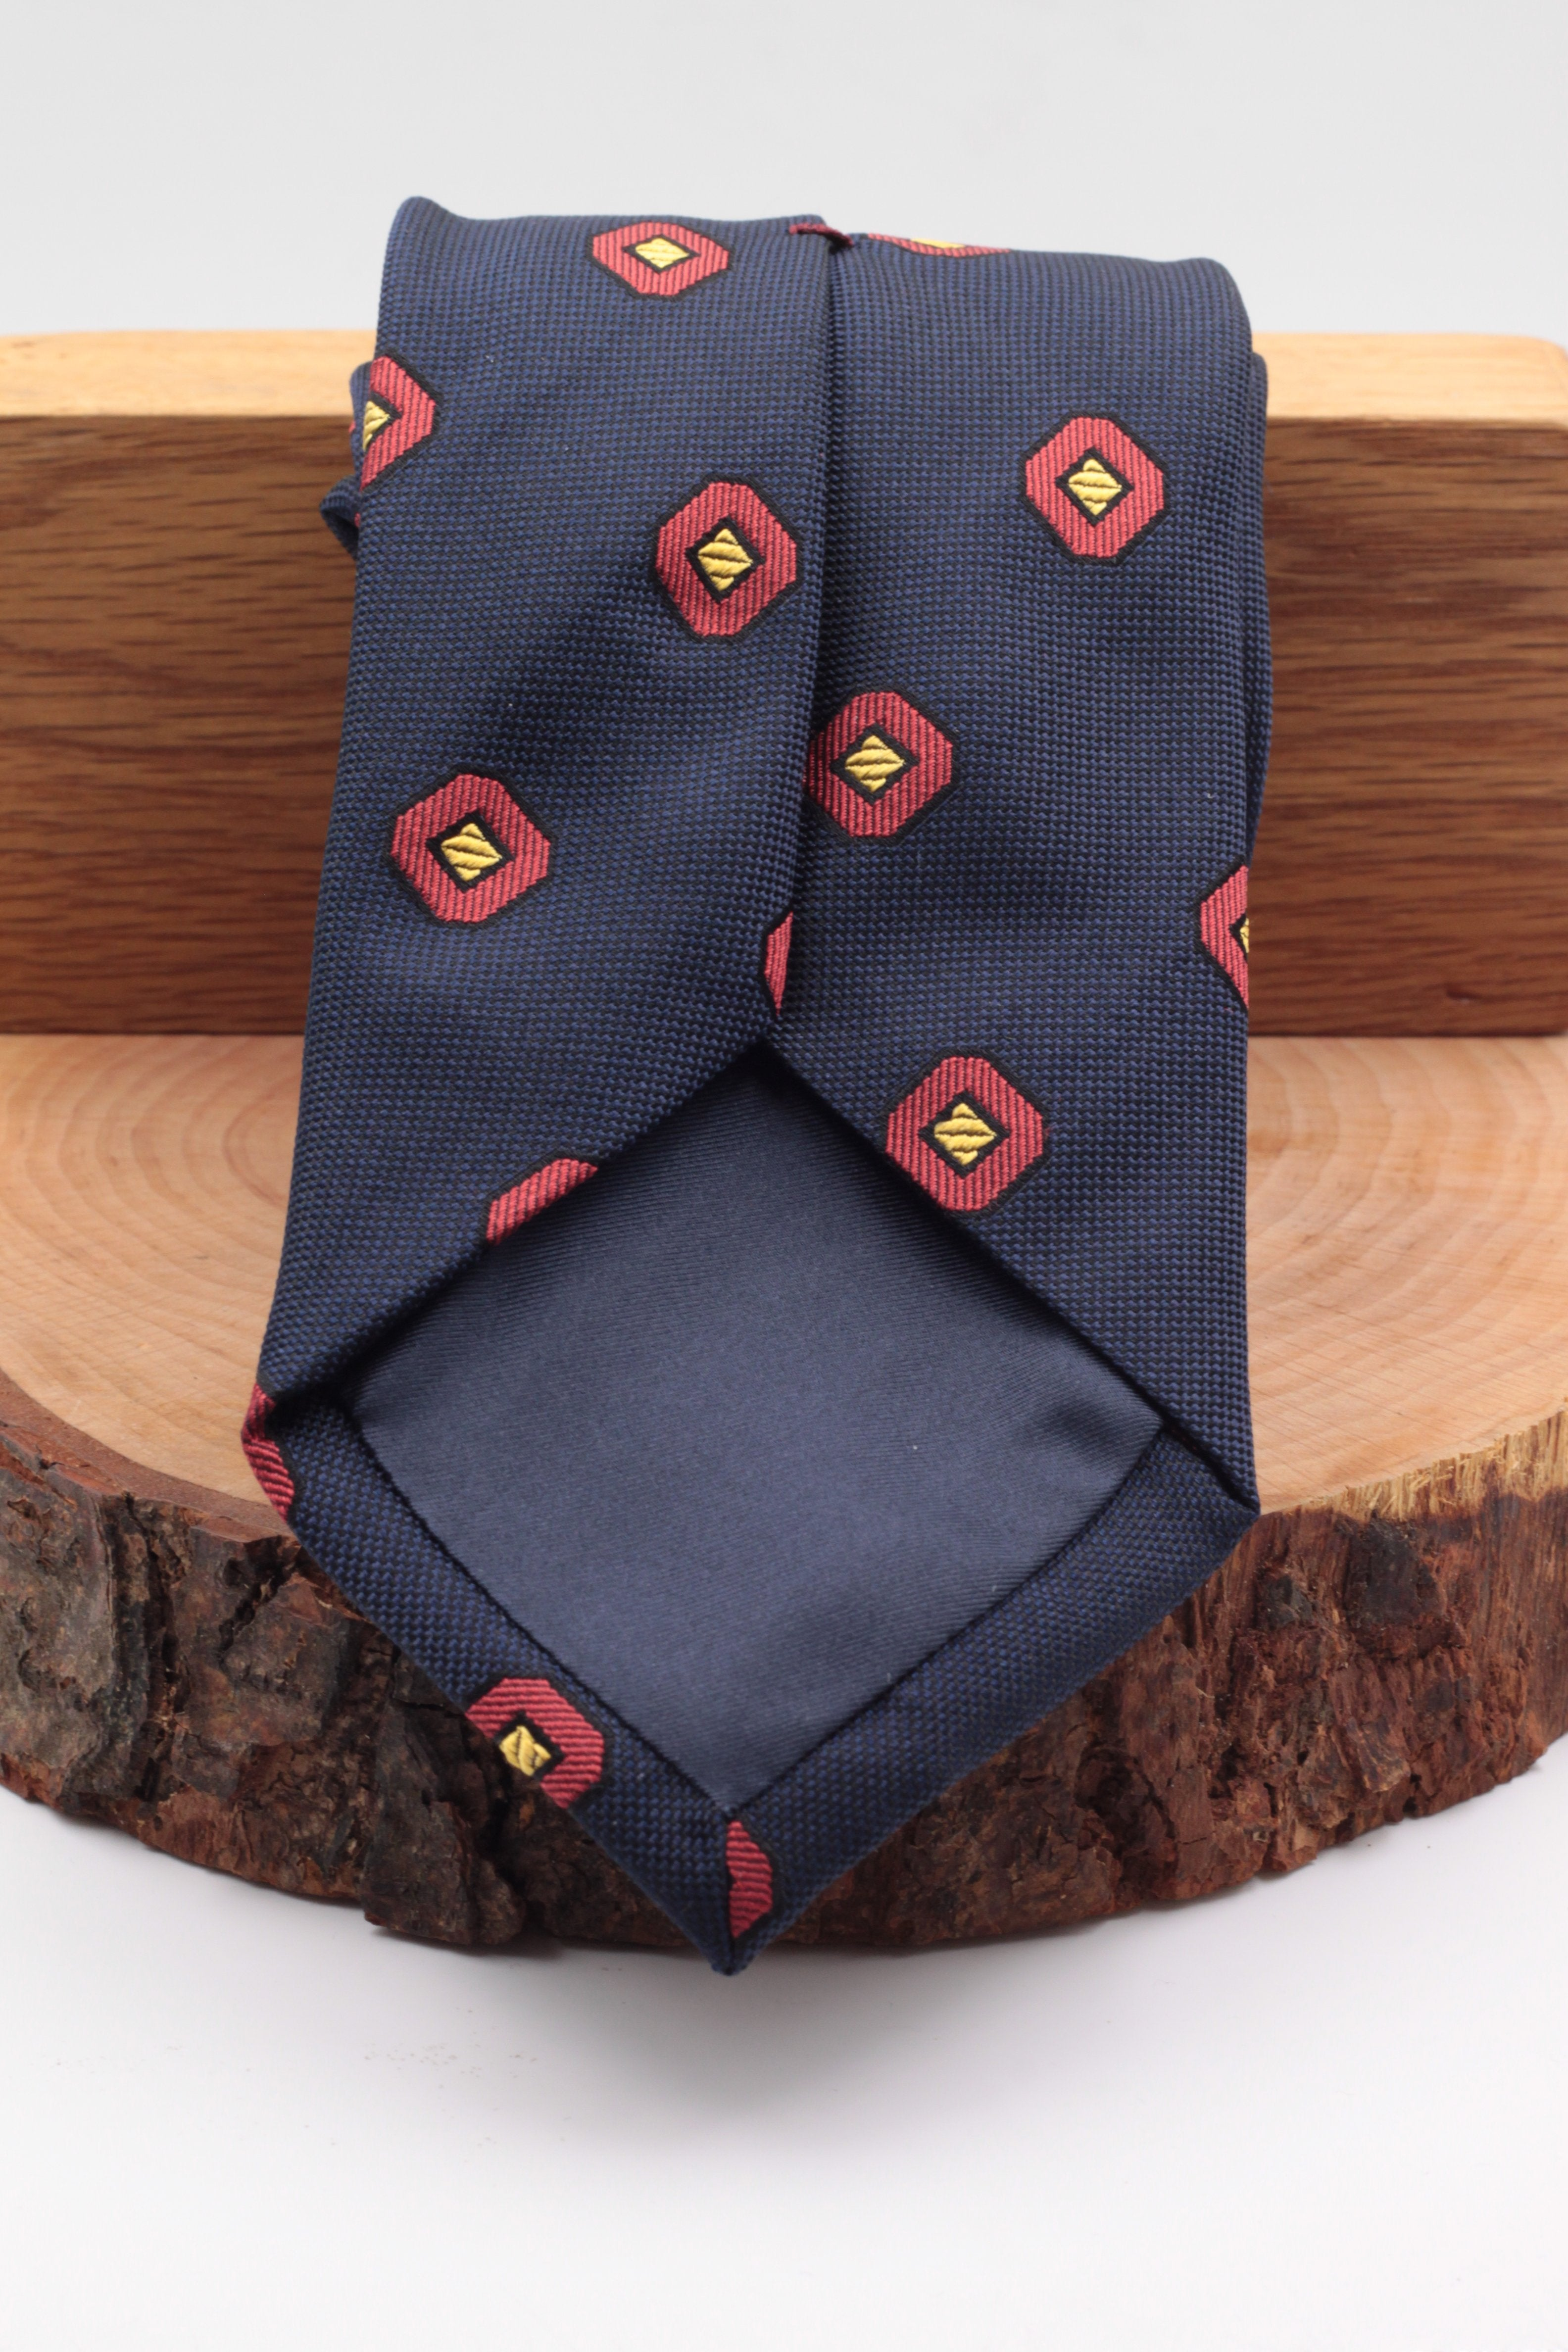 Franco Bassi for Cruciani & Bella 100% Silk Jacquard  Blue navy, red and yellow geometrical motif tie Handmade in Italy 8 cm x 150 cm